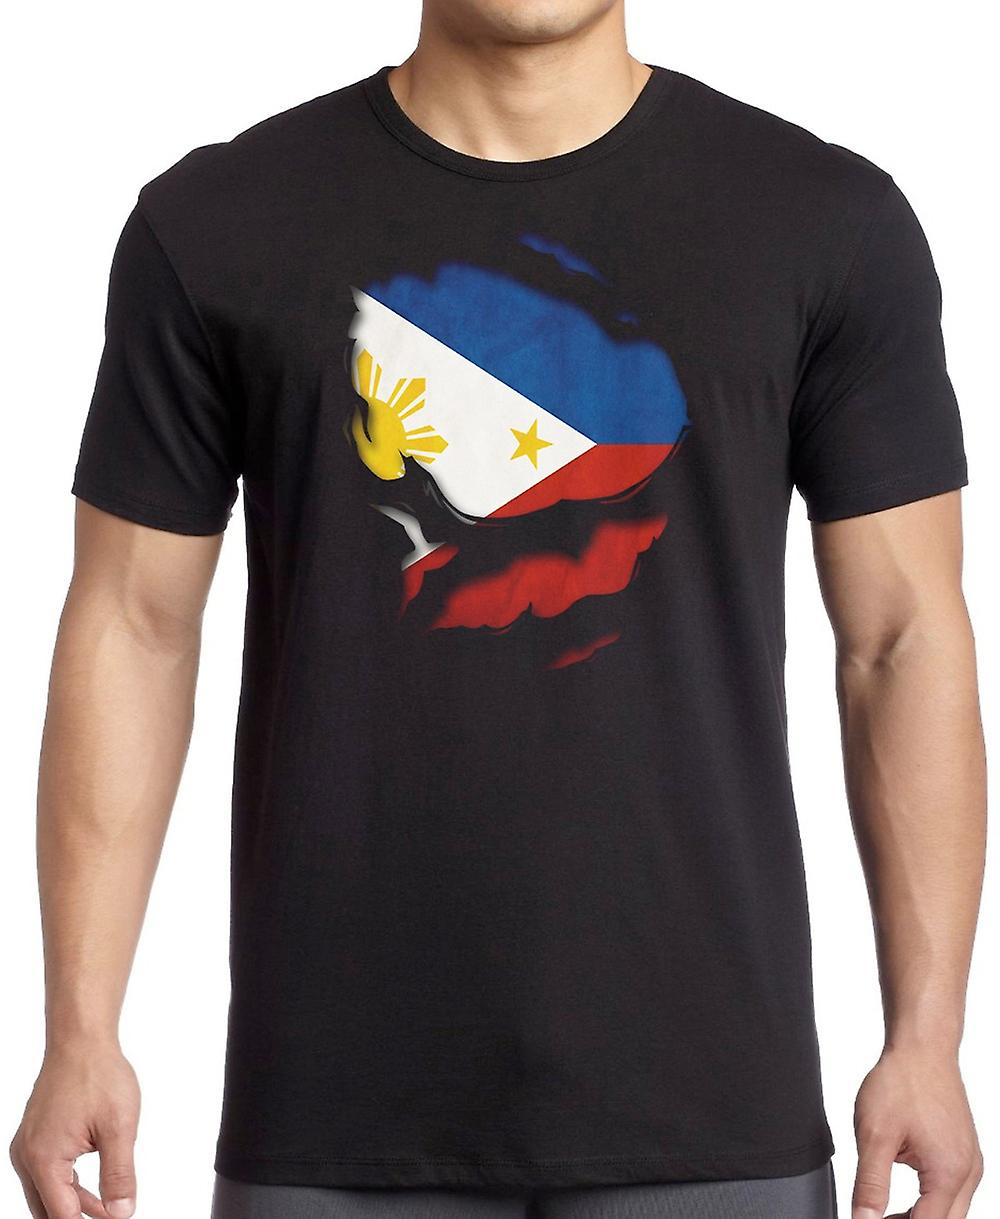 Filipino Phillipines Ripped Effect Under Shirt Women T Shirt